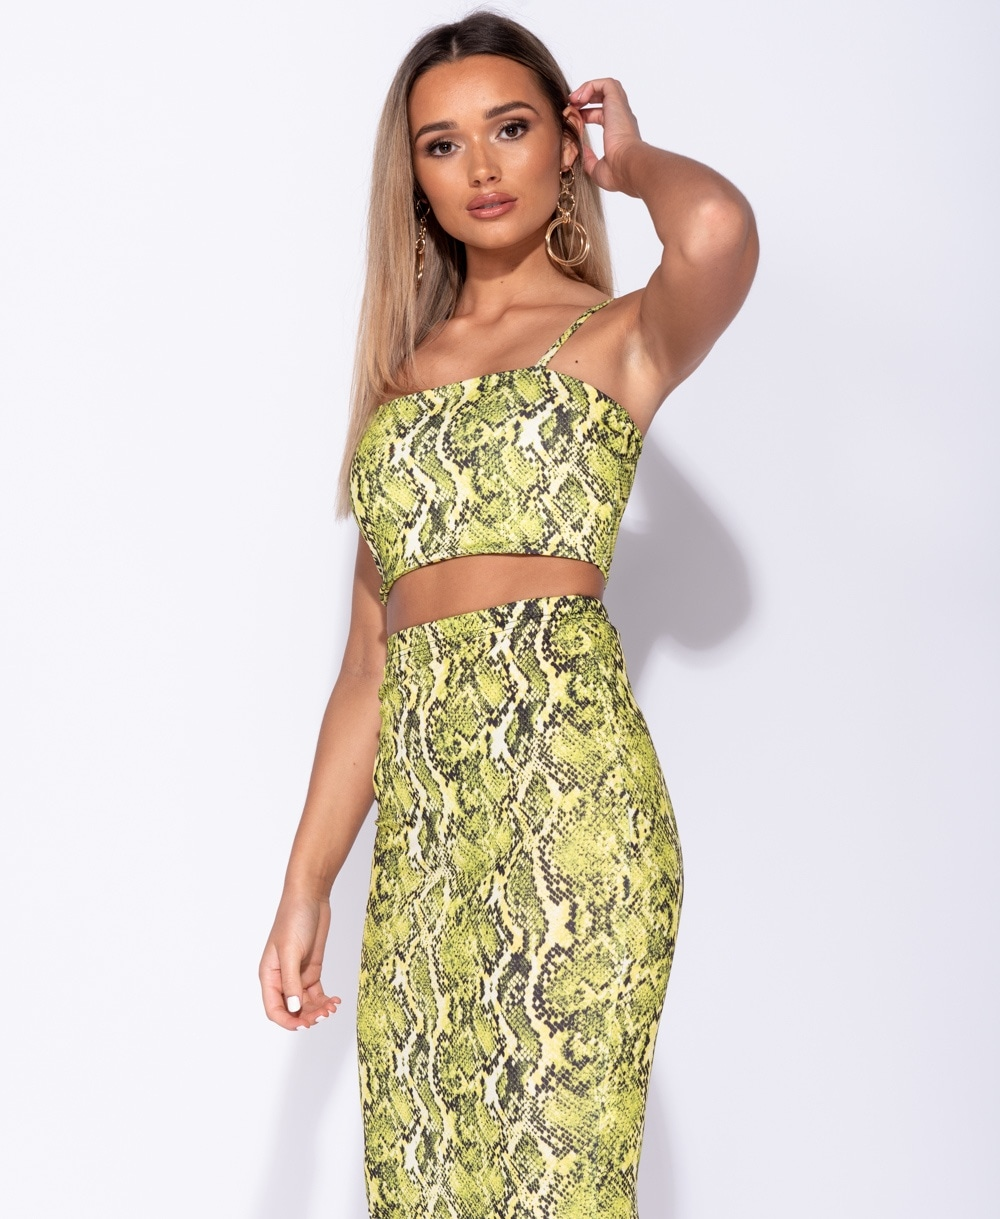 f0ca4201ffe834 Wholesale Snake Print Strappy Crop Top